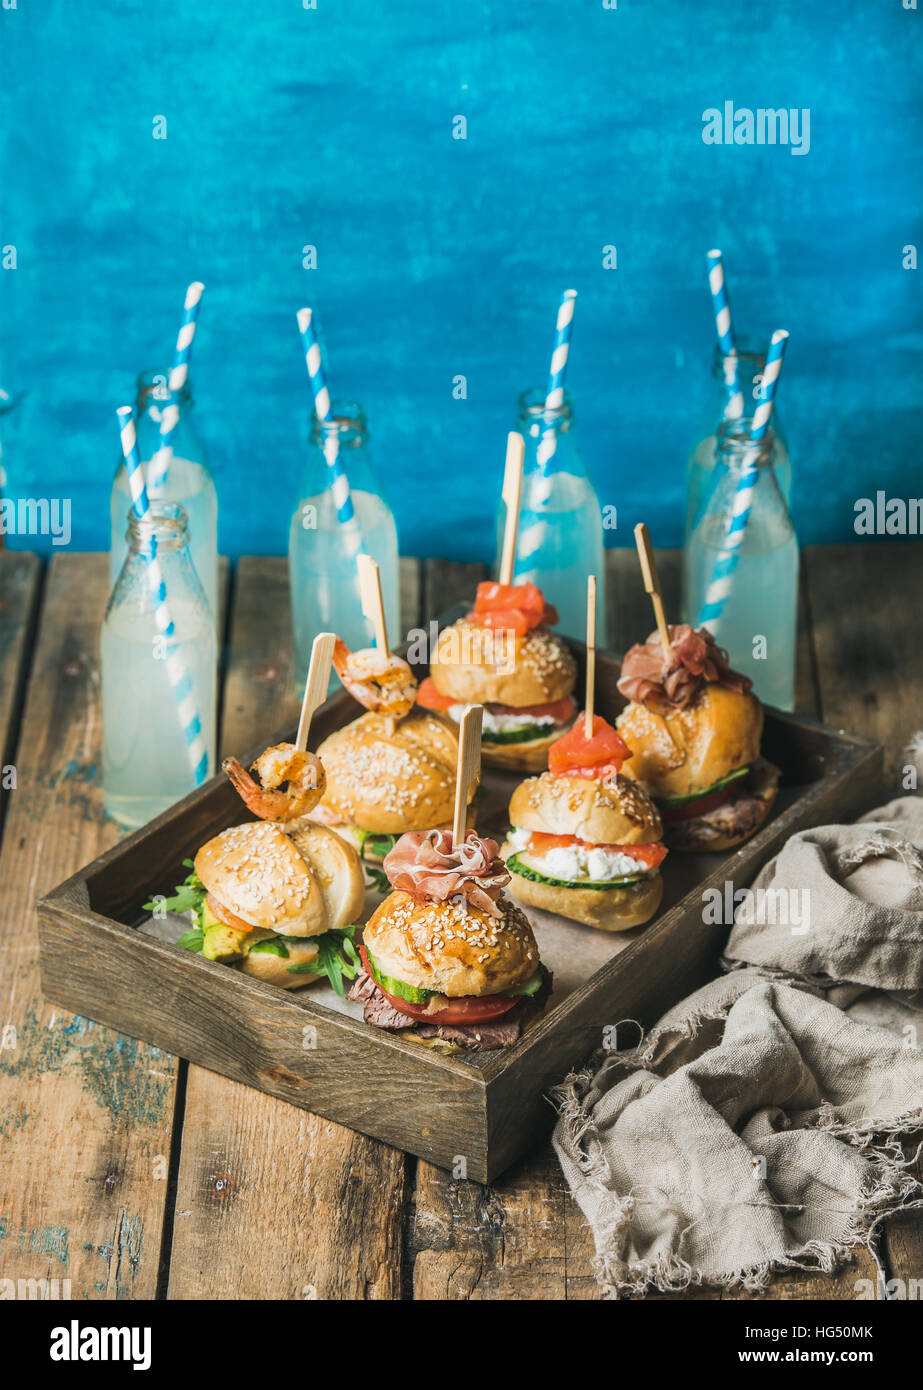 Homemade burgers in wooden tray and lemonade in bottles - Stock Image